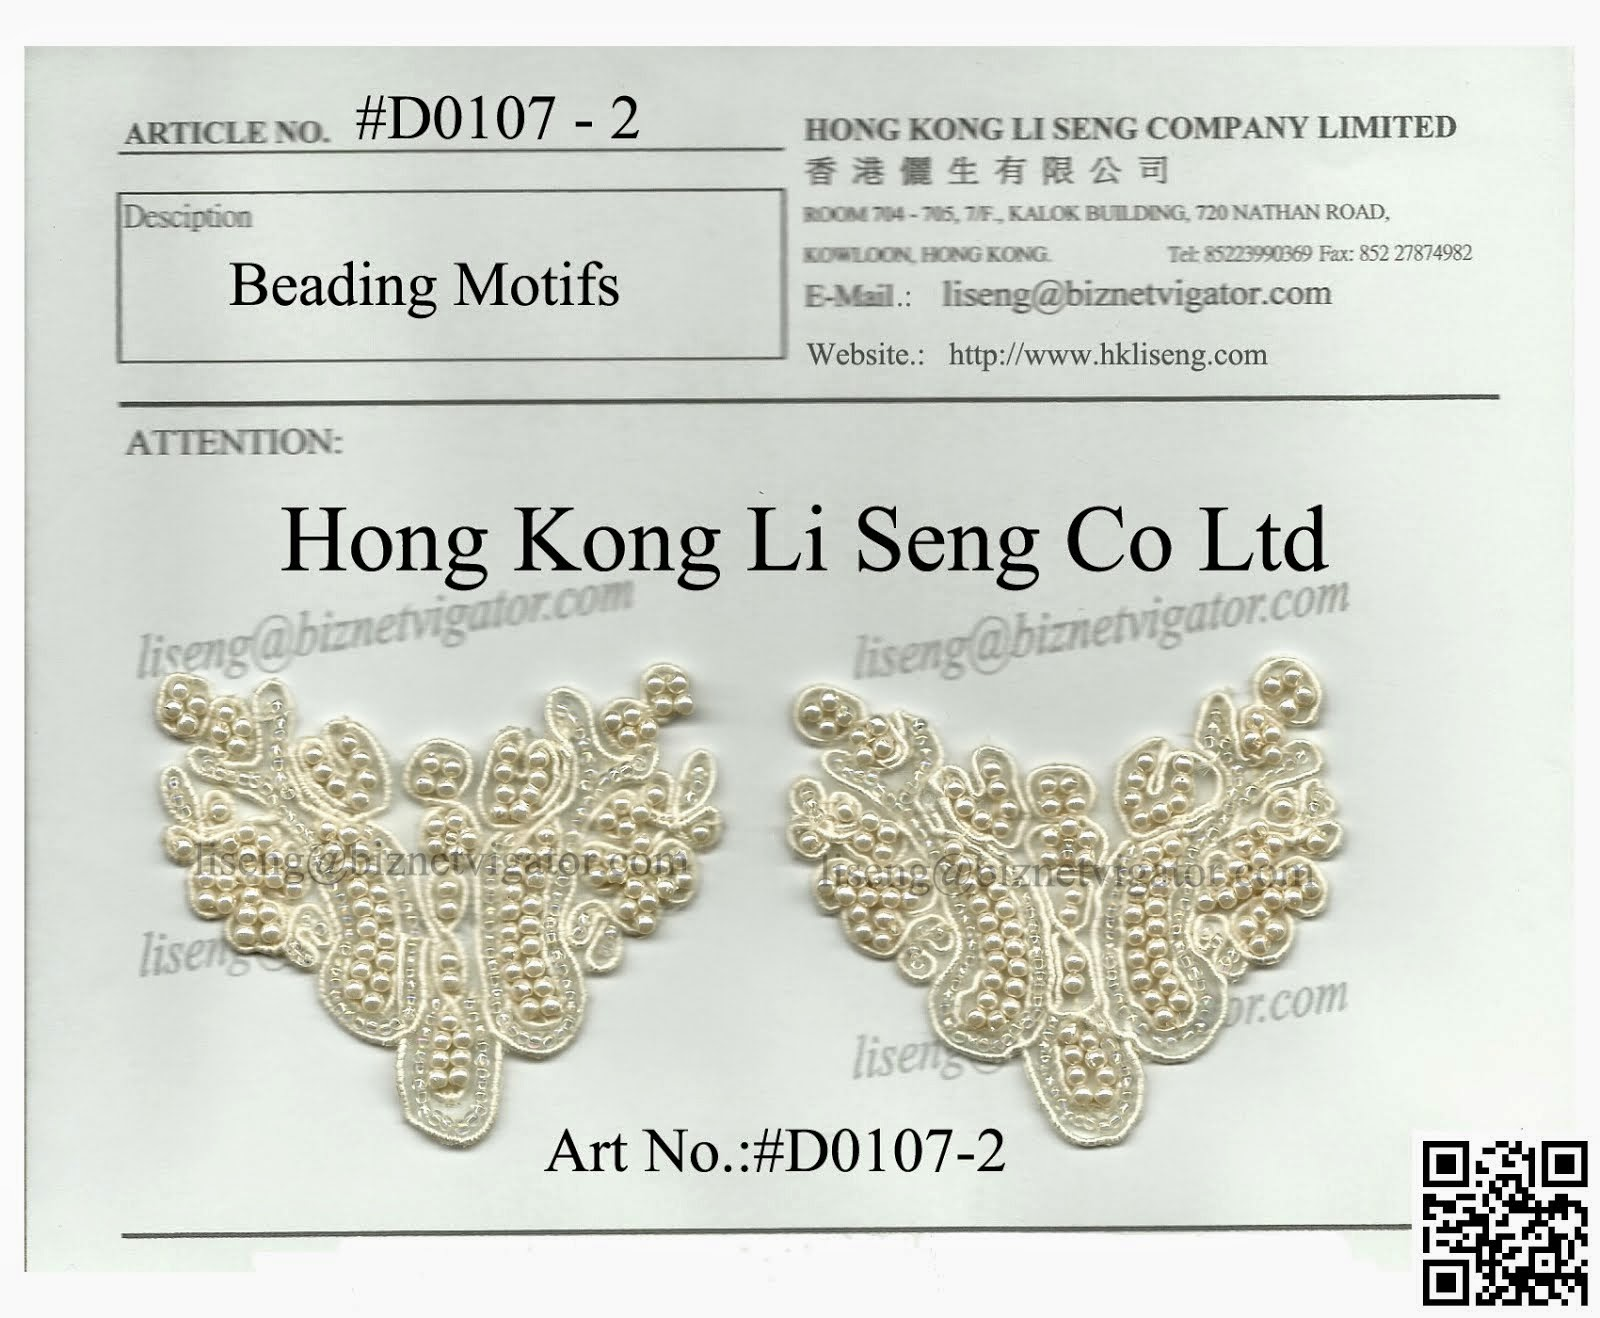 Beading Motif Manufacturer - Hong Kong Li Seng Co ltd